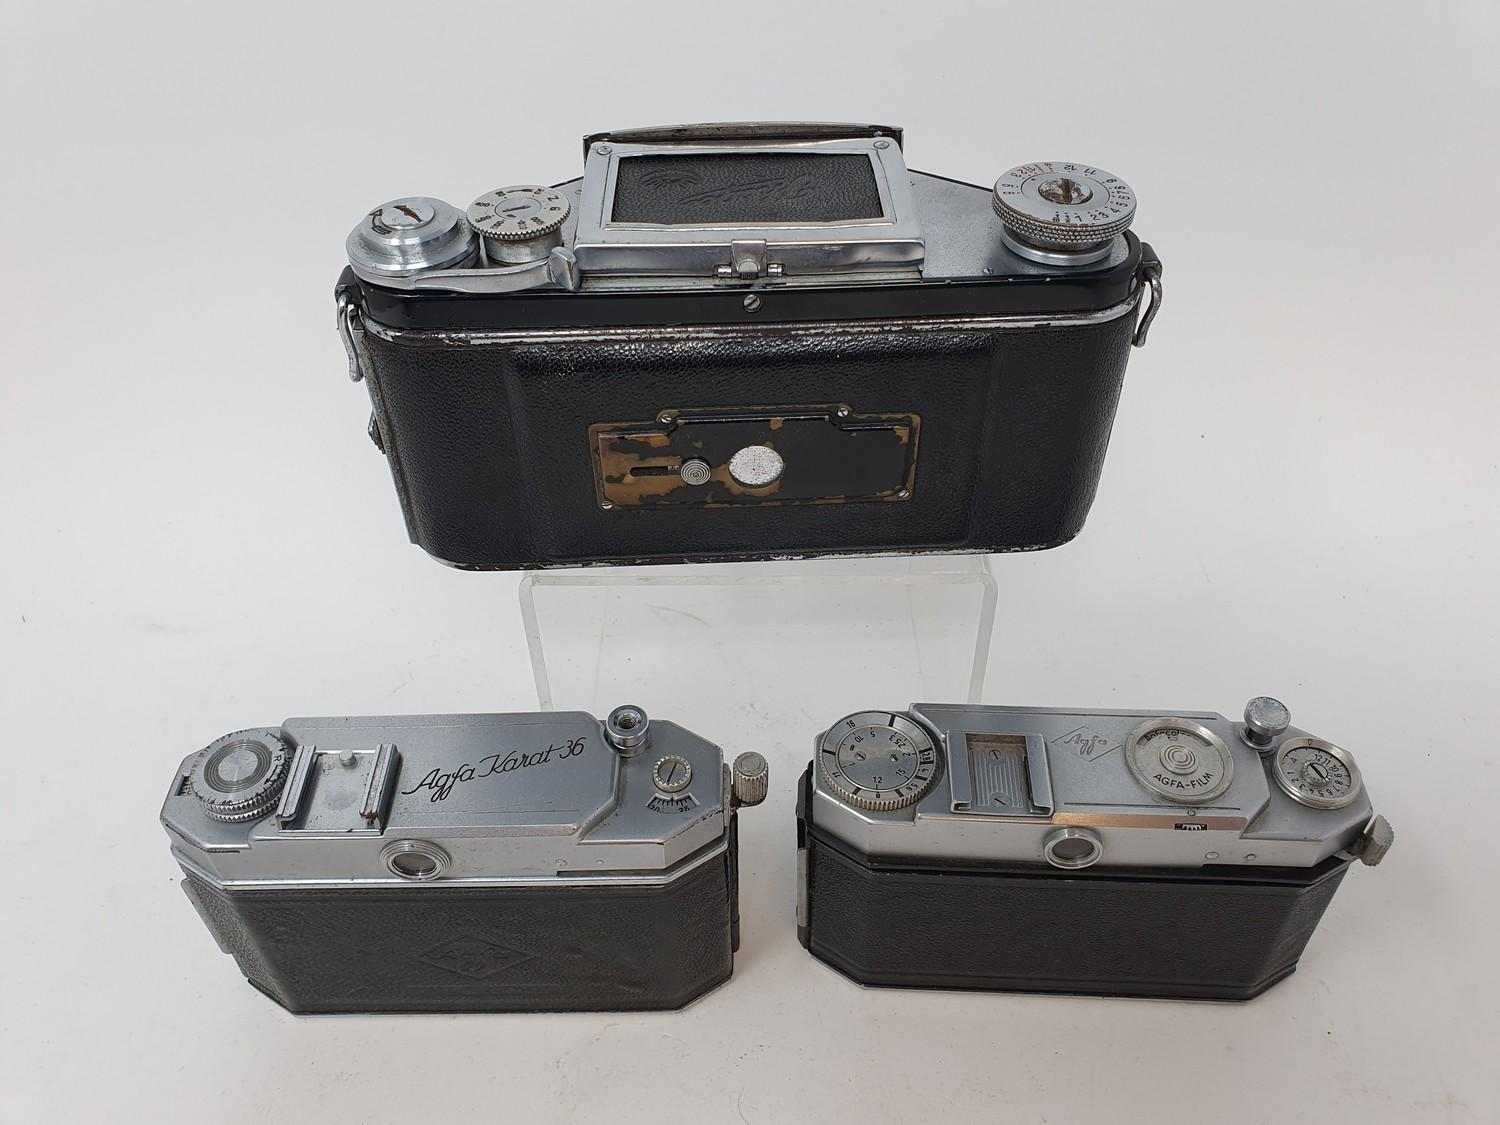 An Exakta camera, Agfa Karat 36 camera and an Agfa camera (3) Provenance: Part of a vast single - Image 5 of 6